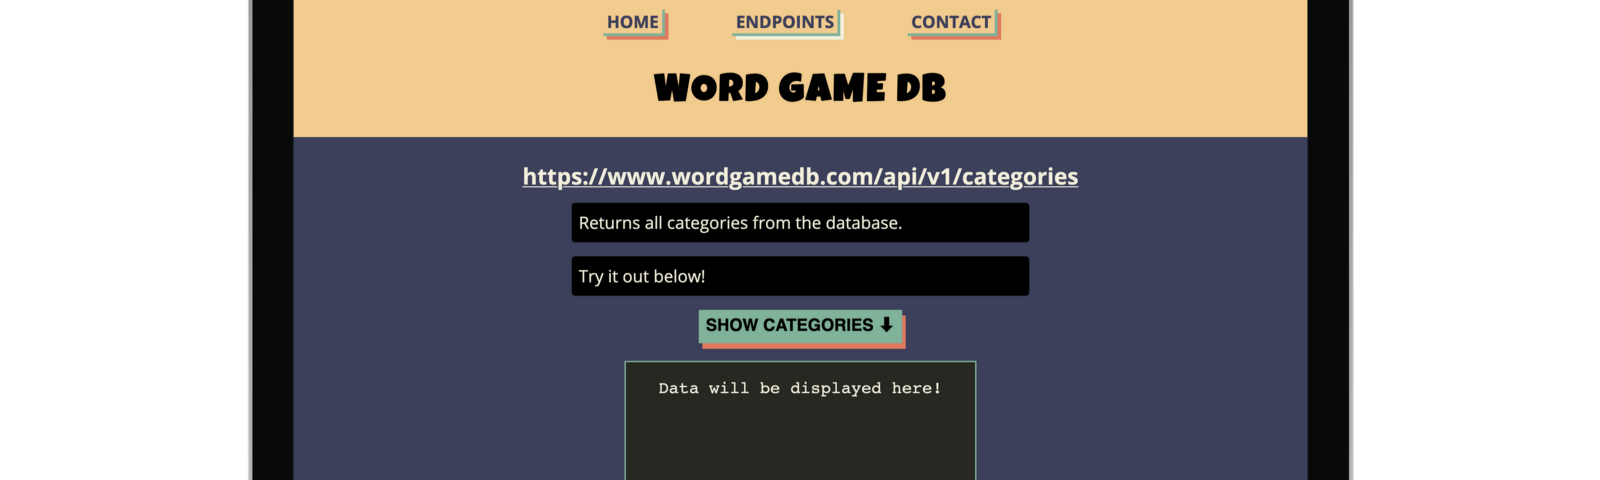 The live version of Word Game DB